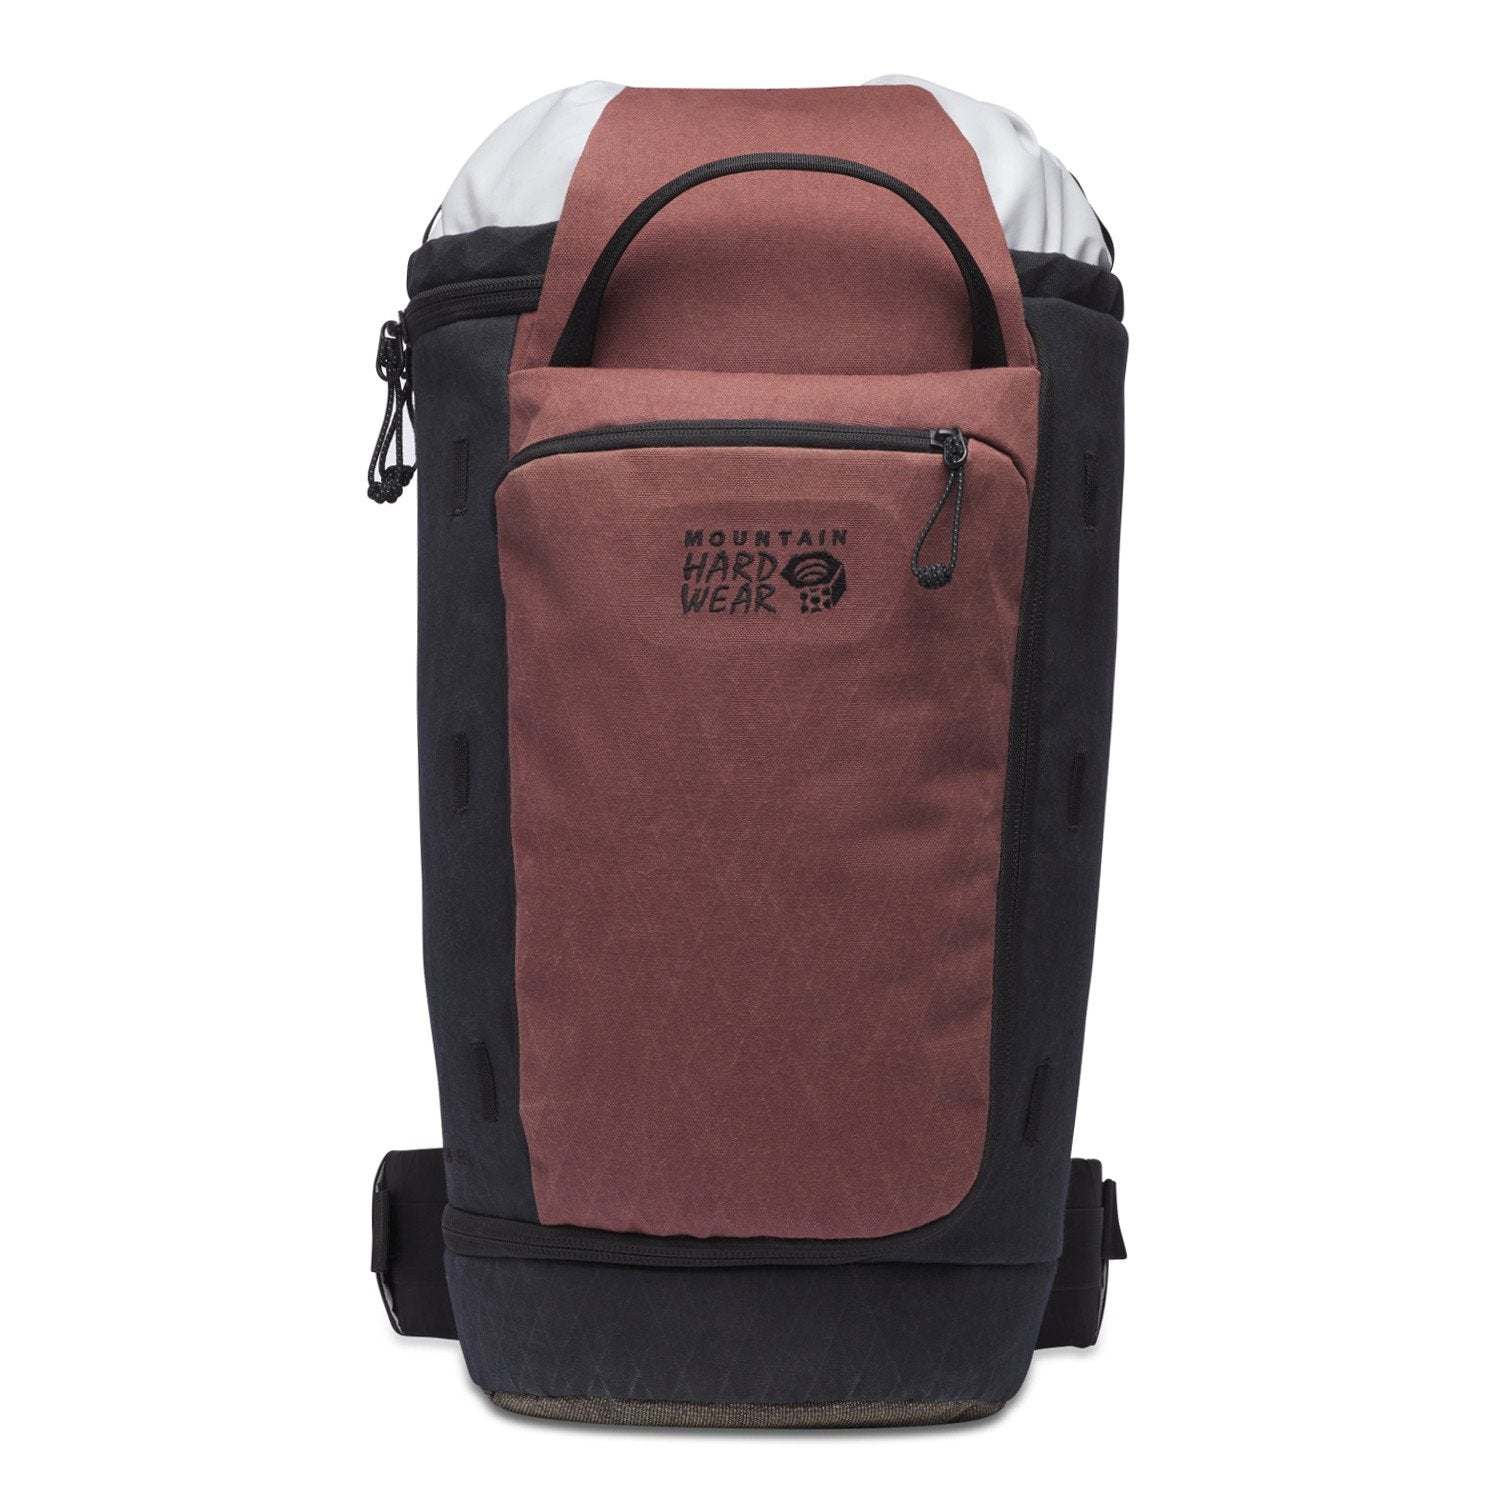 Mountain Hardwear Crag Wagon 35 in Burgundy Red